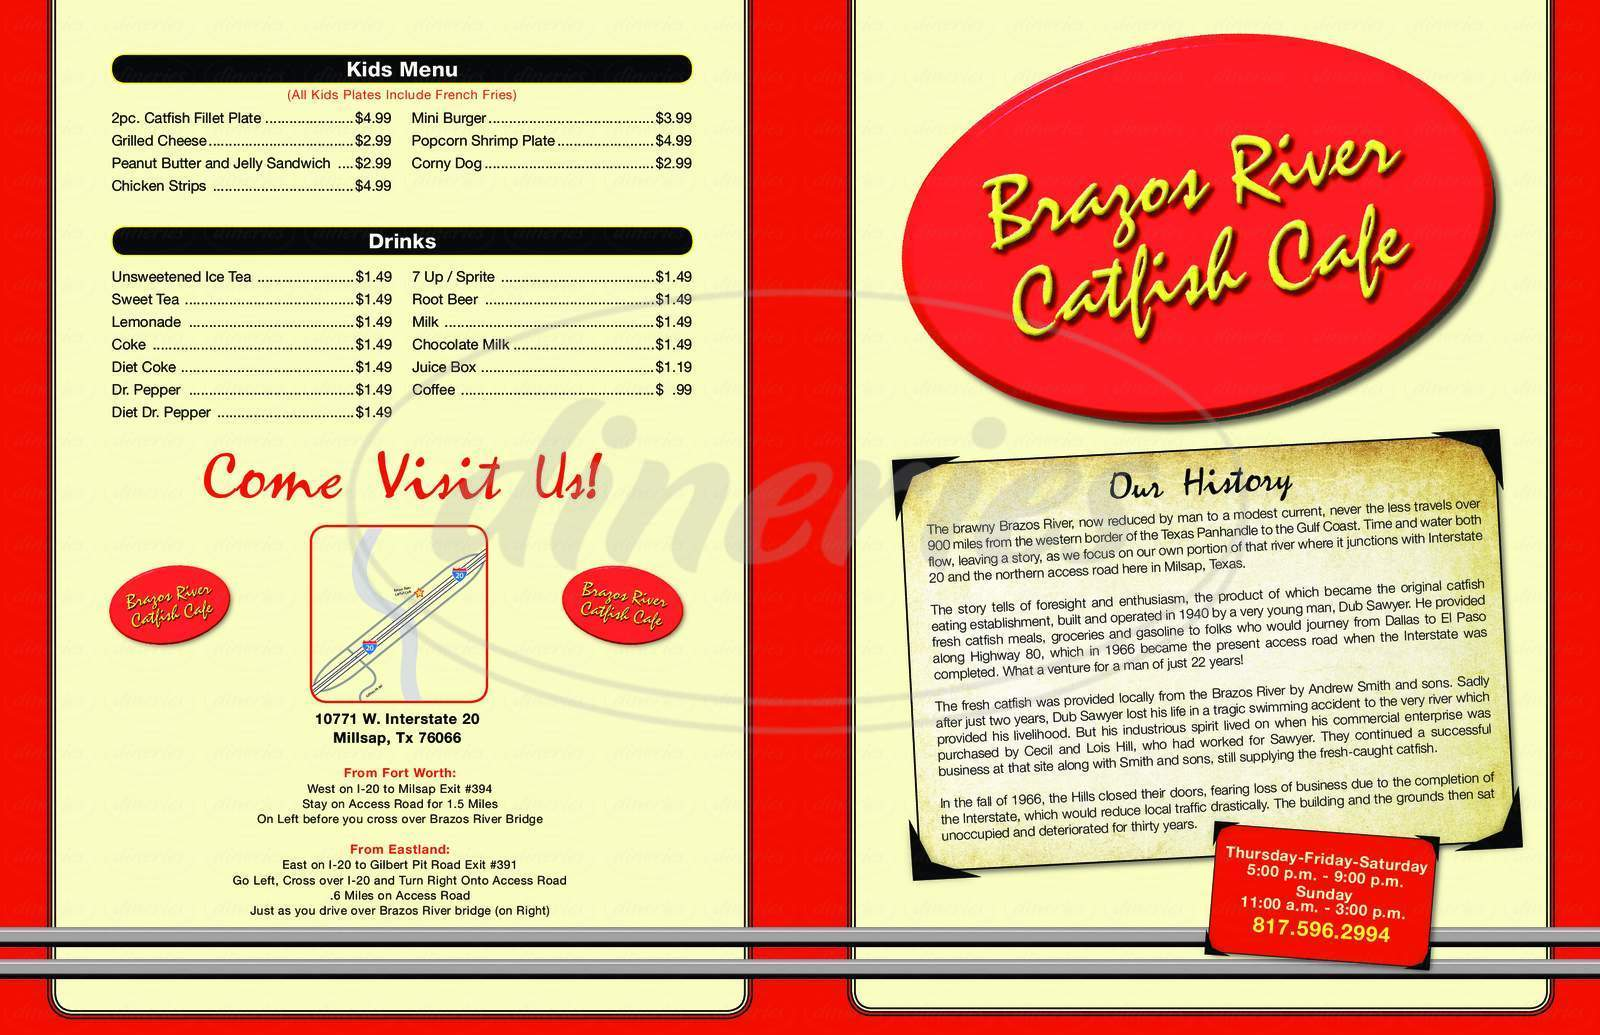 menu for Brazos River Catfish Cafe